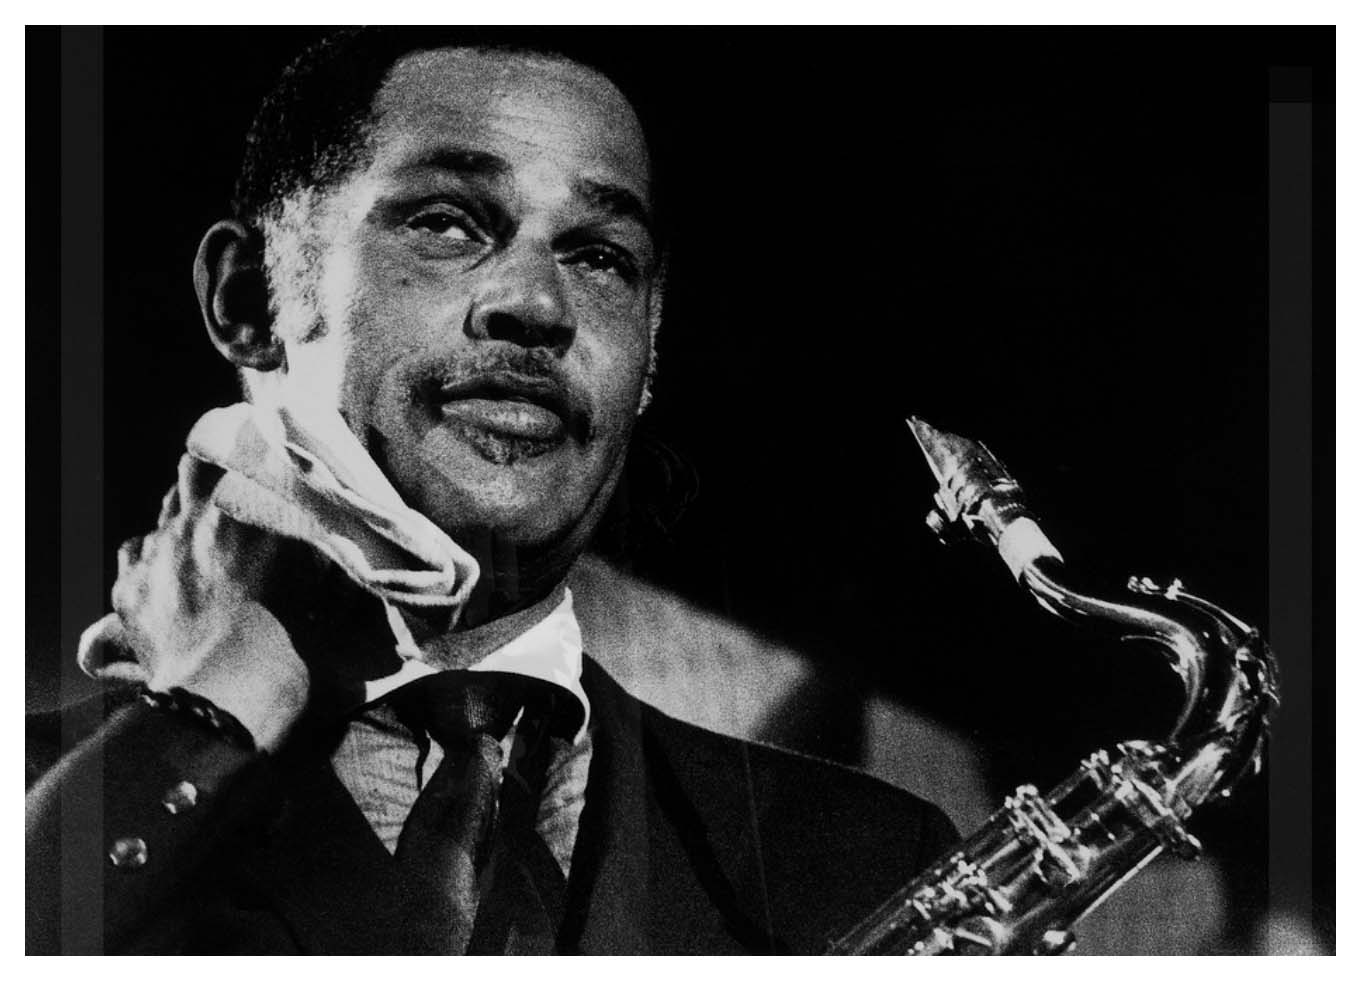 "Dexter Gordon   (February 27, 1923 – April 25, 1990) was an American   jazz   tenor saxophonist. He was among the earliest tenor players to adapt the   bebop   musical language of people such as   Charlie Parker  ,   Dizzy Gillespie  , and   Bud Powell   to the instrument. Gordon's height was 6 feet 6 inches (198 cm), so he was also known as ""Long Tall Dexter"" and ""Sophisticated Giant"". His studio and live performance career spanned over 40 years."